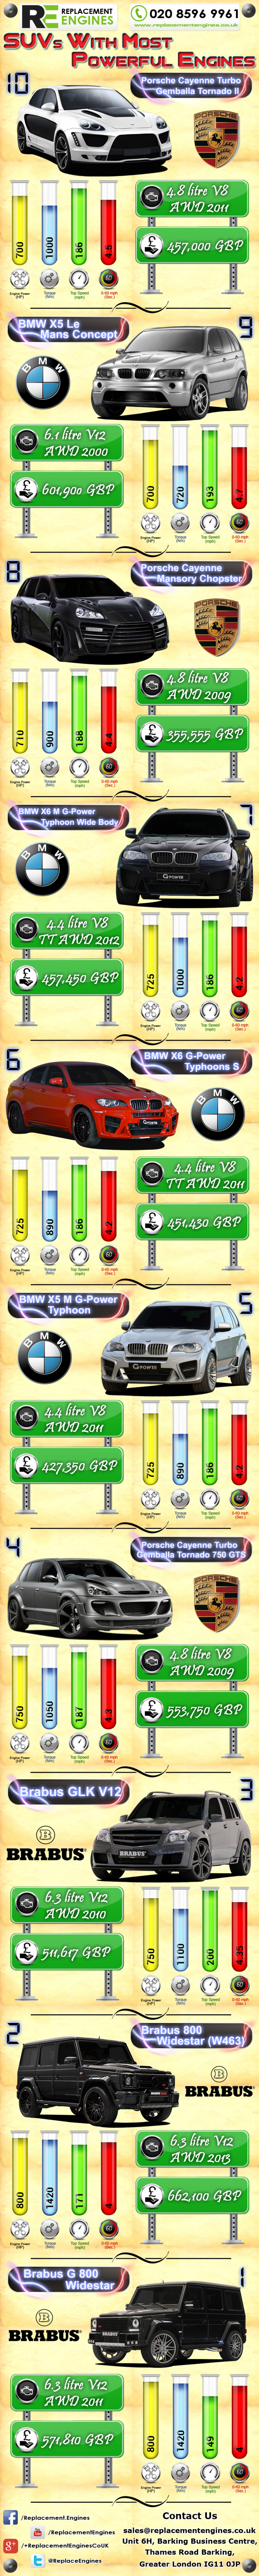 The Best Sports Utility Vehicles Infographic